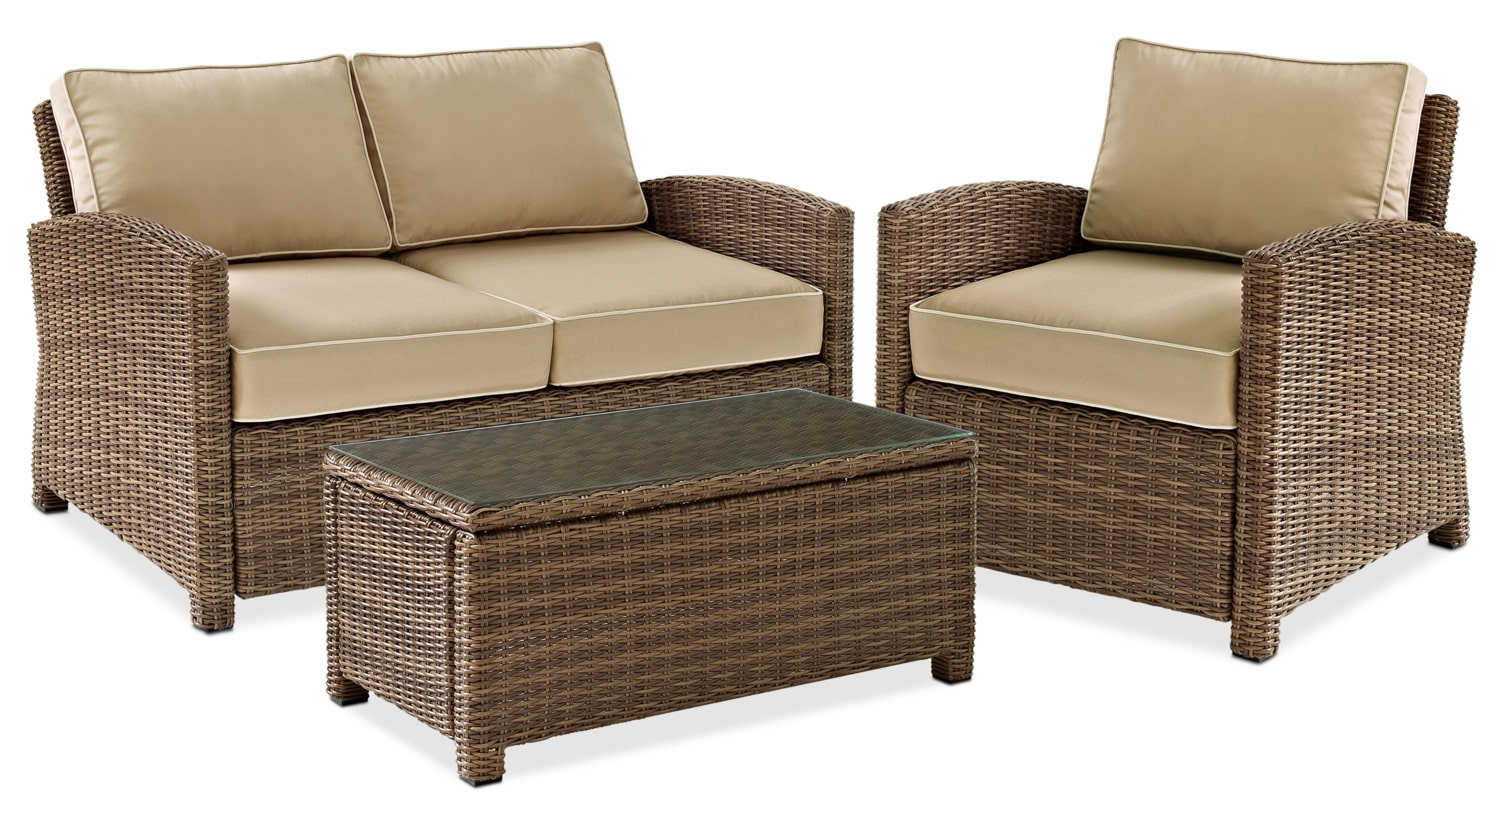 Destin Outdoor Loveseat Chair And Cocktail Table Set Sand Value City Furniture And Mattresses